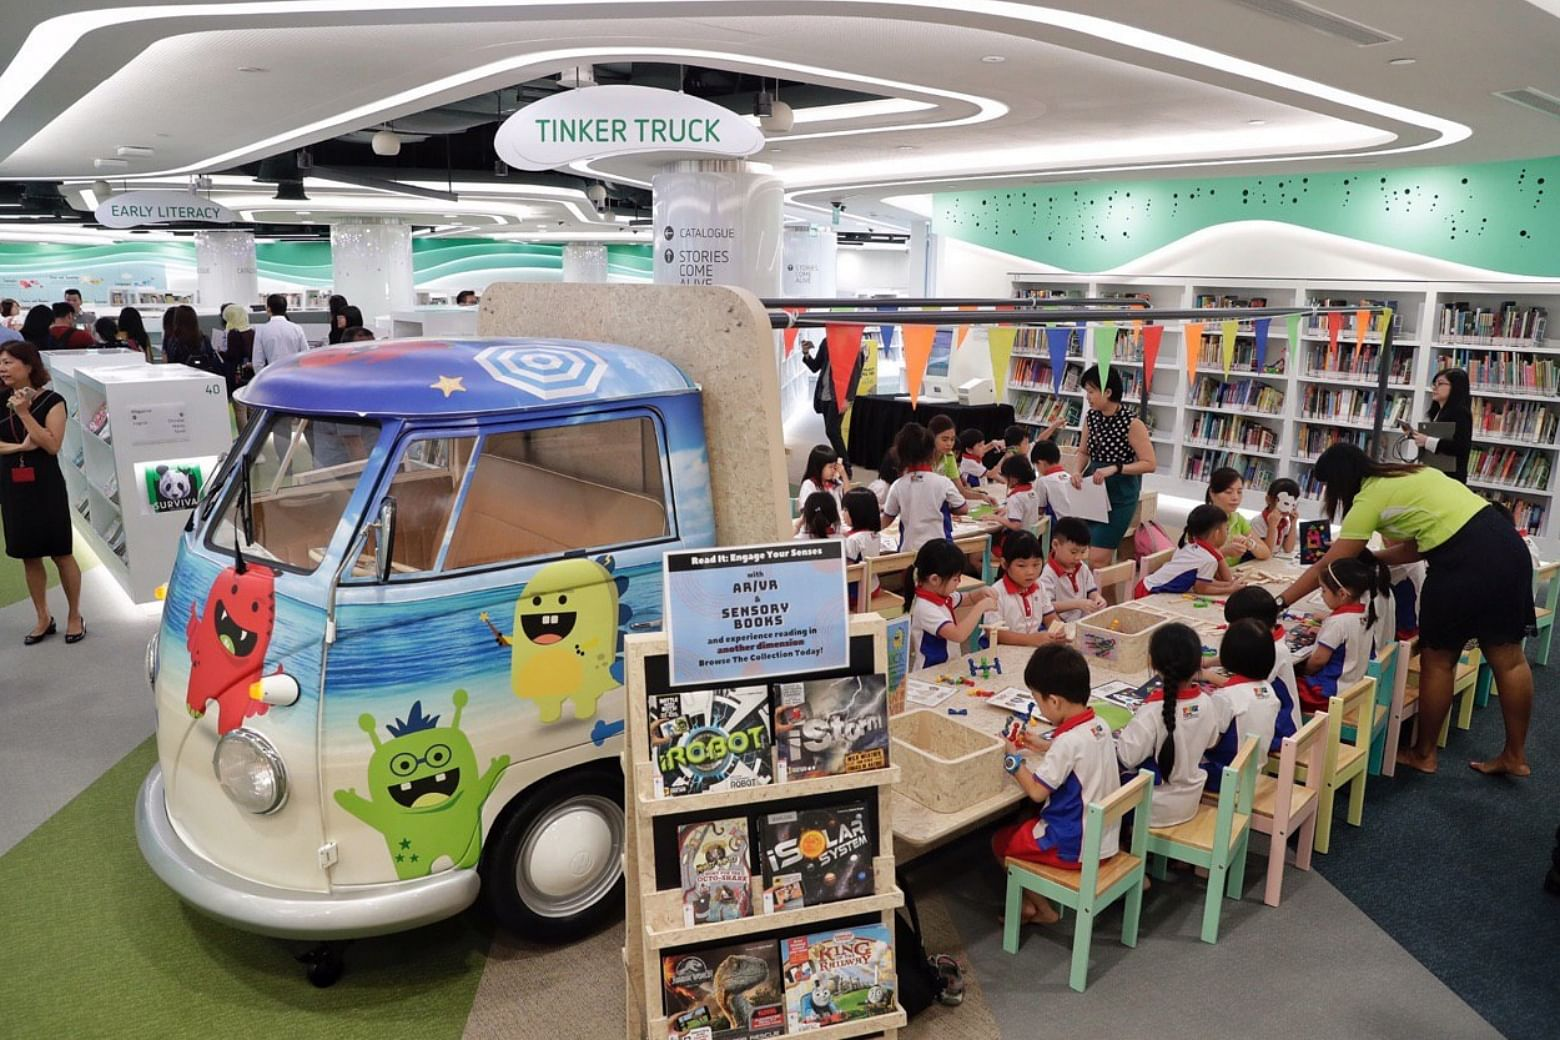 Biggest shopping mall library offering views of Sentosa to